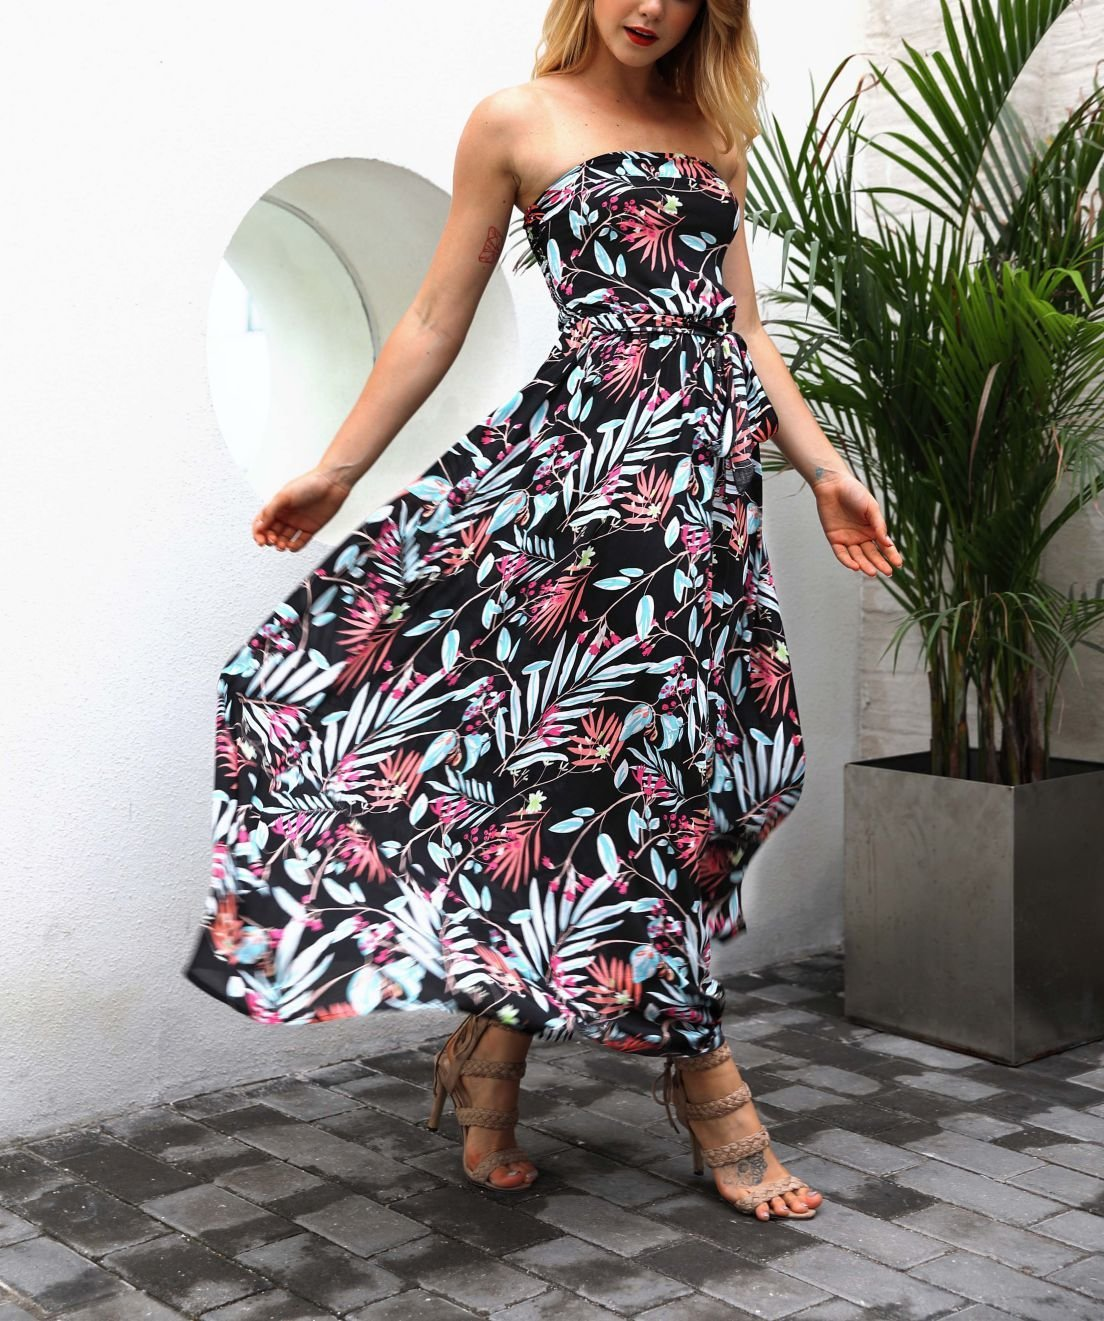 First Love Formal Dress with Full Chiffon Skirt